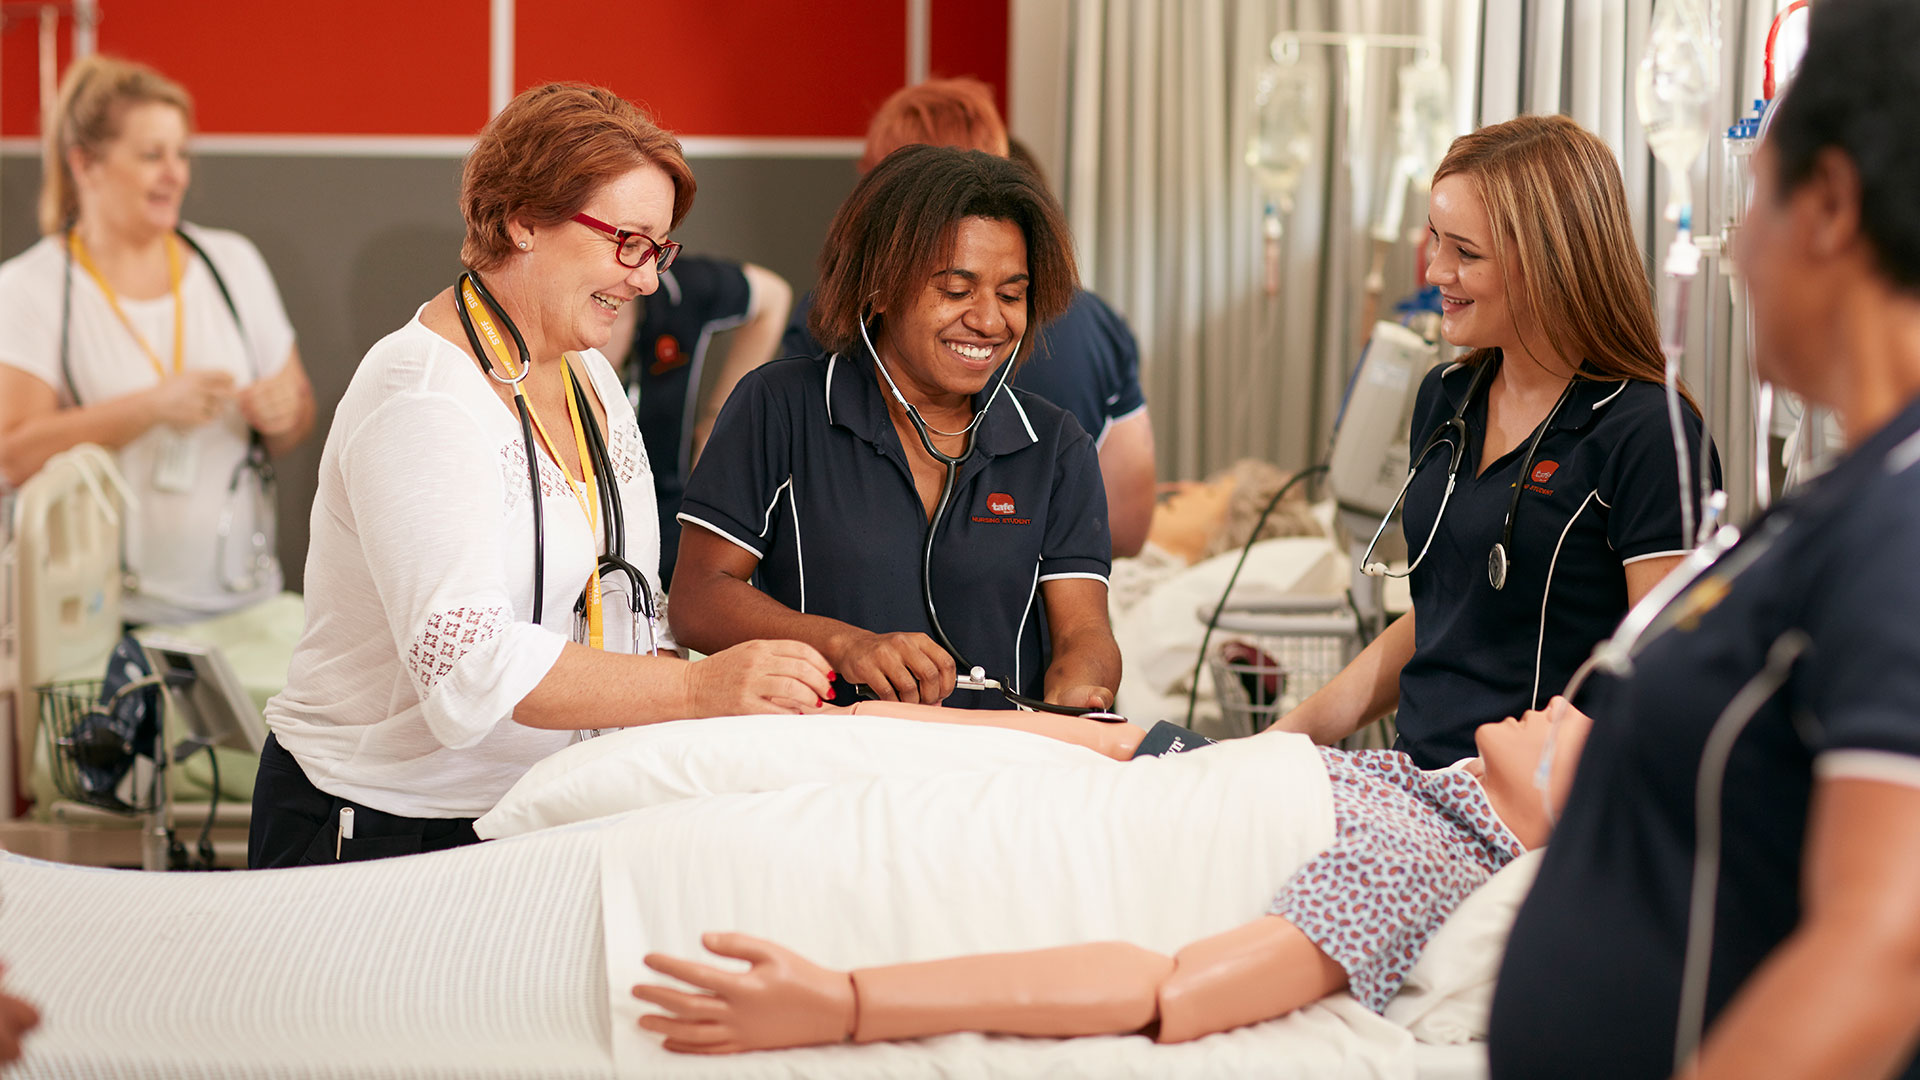 cairns-facilities-clinical-labs-nursing-wards-01.jpg